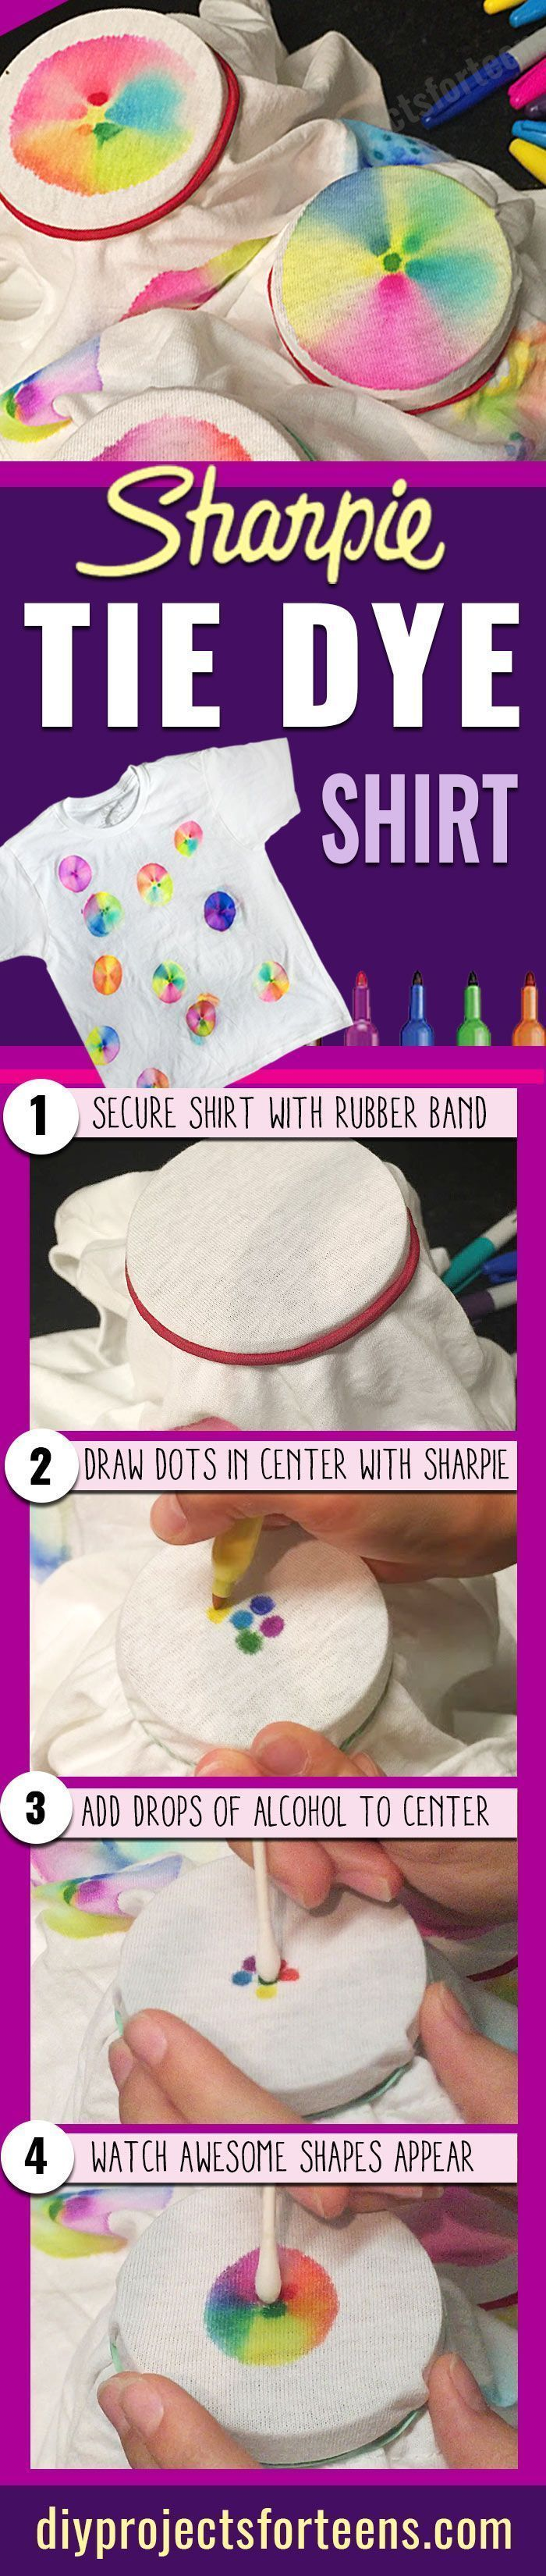 tie and dye instructions